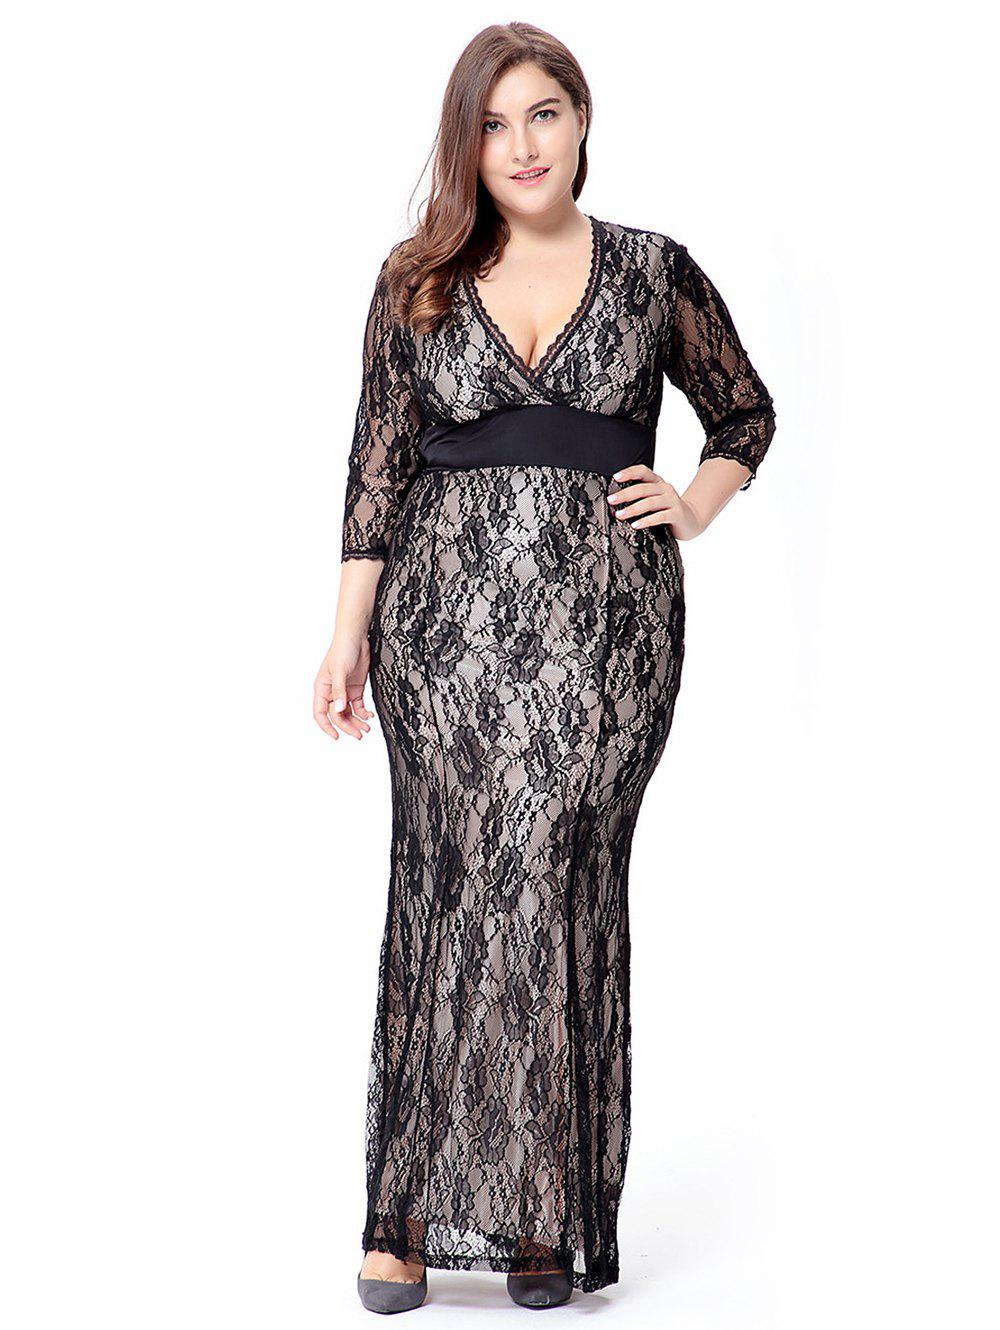 Black 6xl Empire Waist Plus Size Lace Bodycon Dress With Sleeves ...